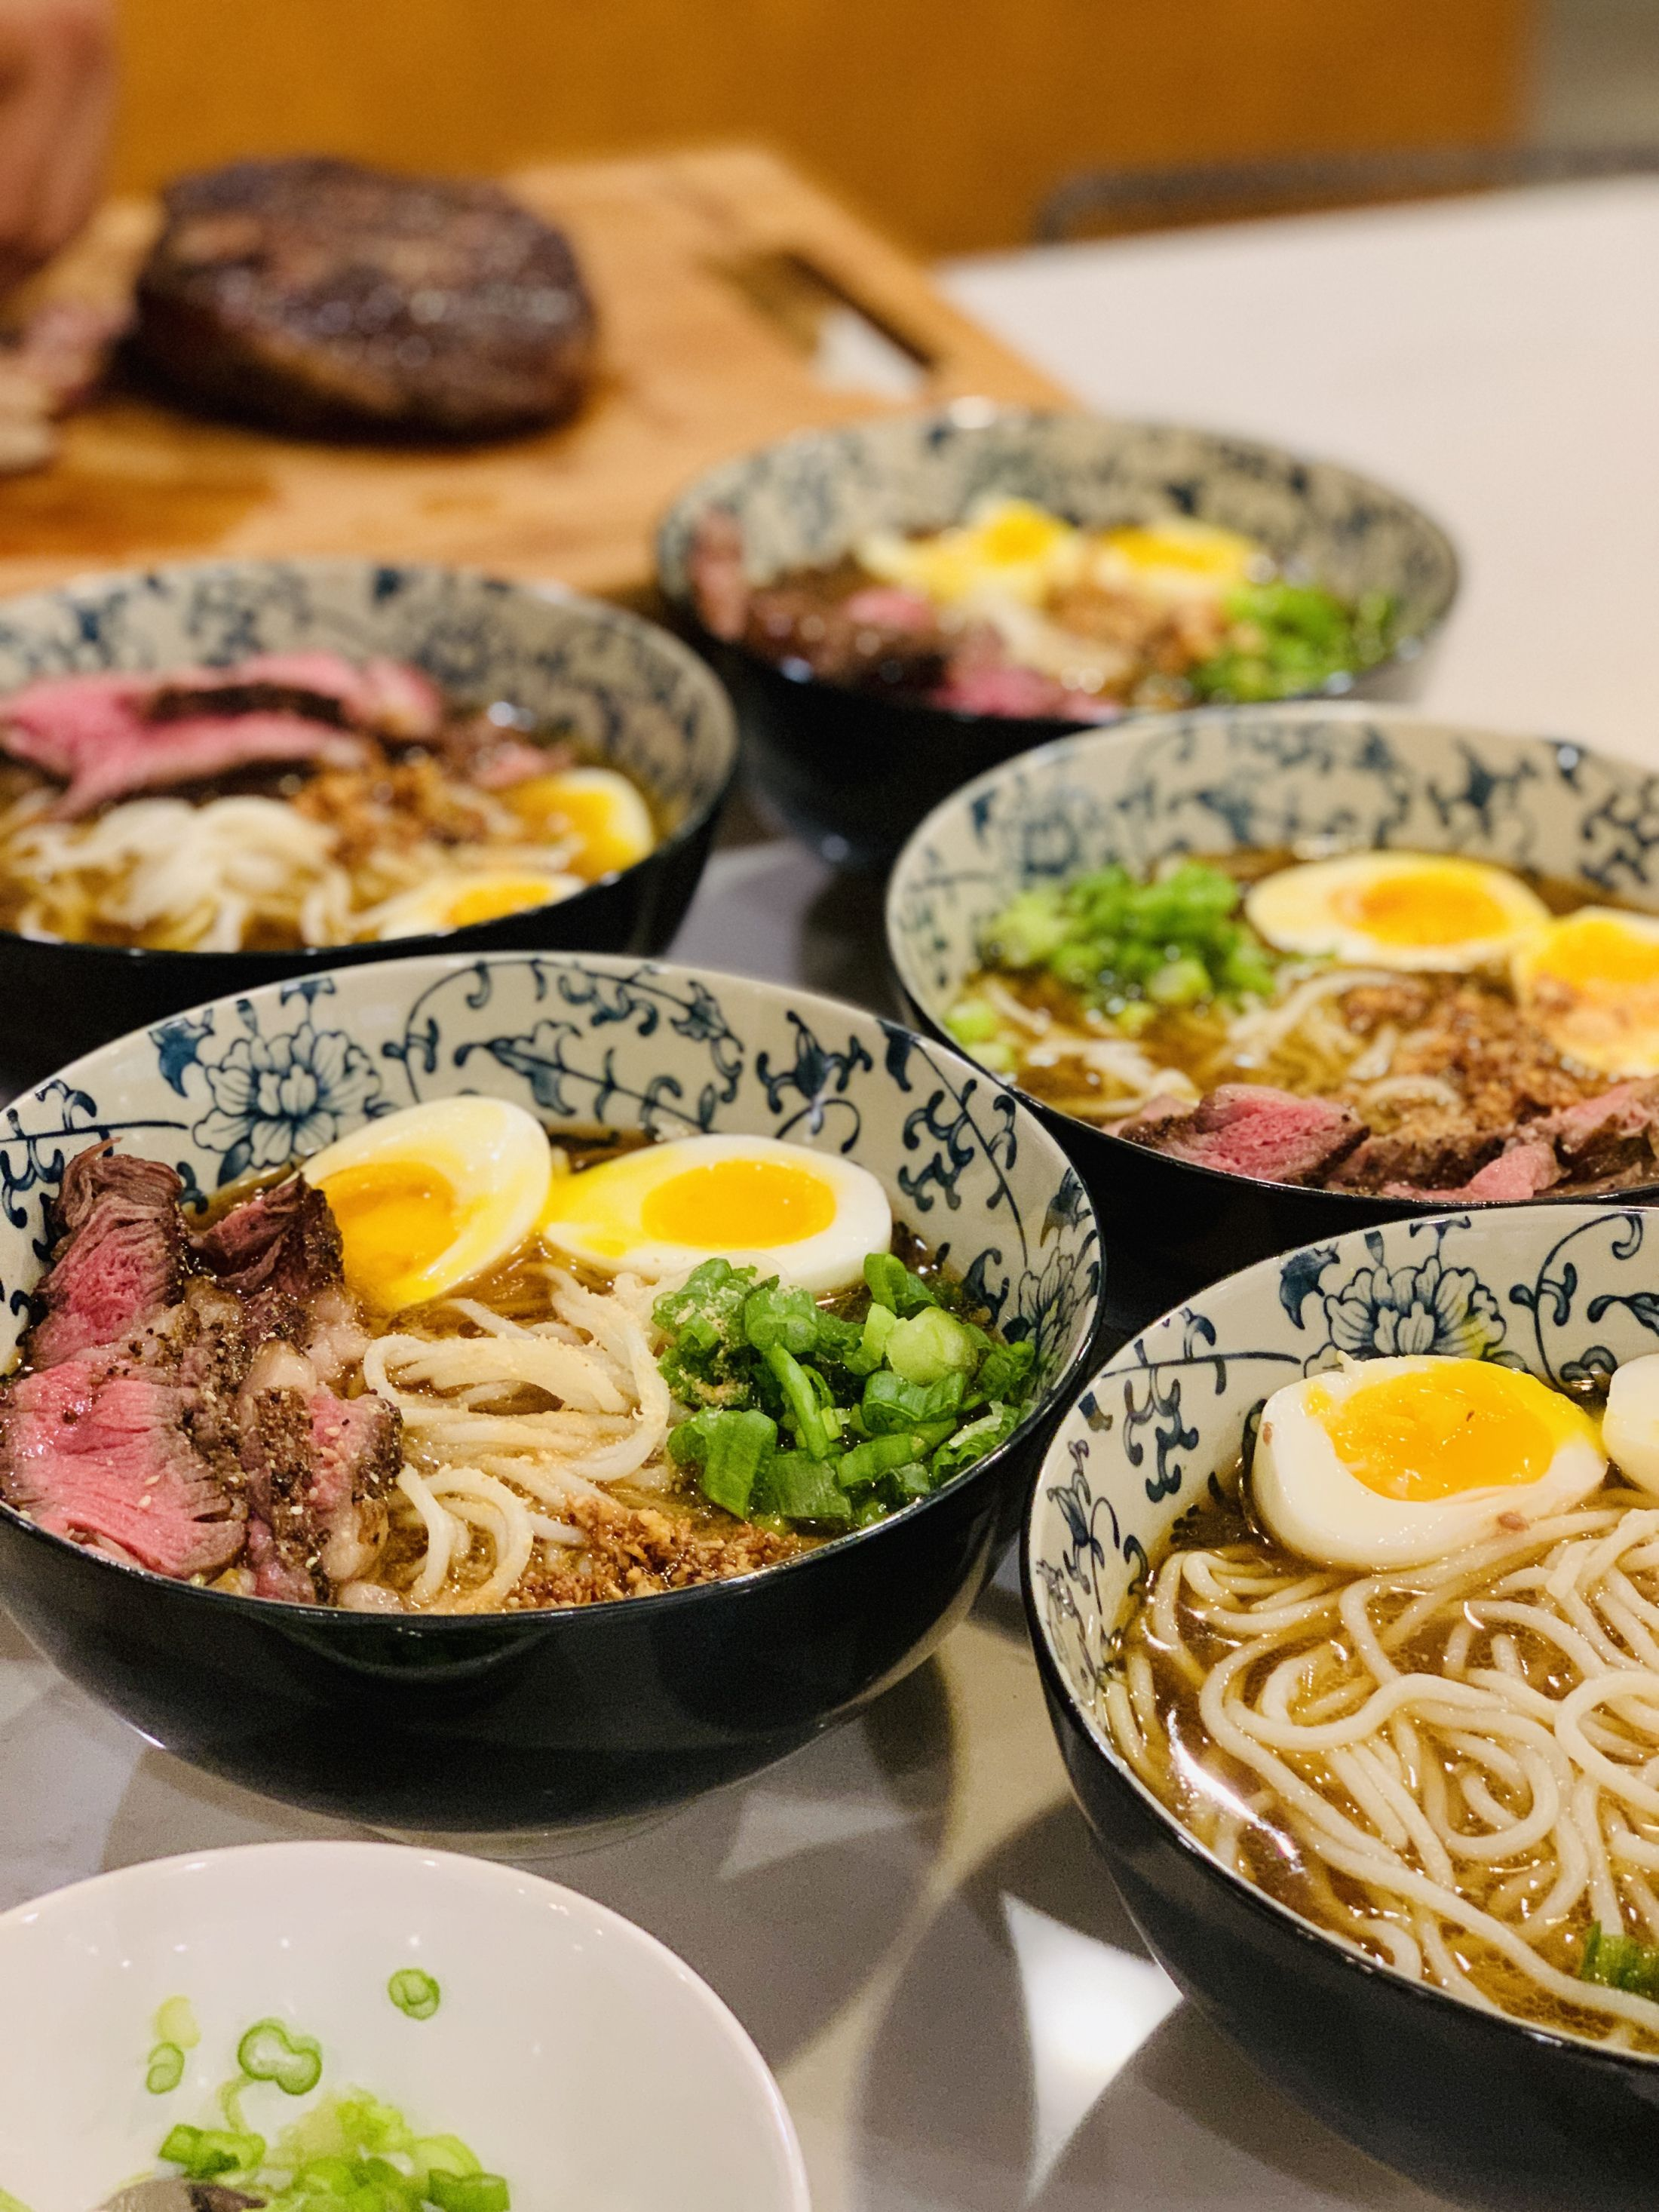 Japanese Style Halal Ramen Noodles Halal Bbq Pitmasters In 2020 Noodle Recipes Easy Bbq Pitmasters Pork Ramen